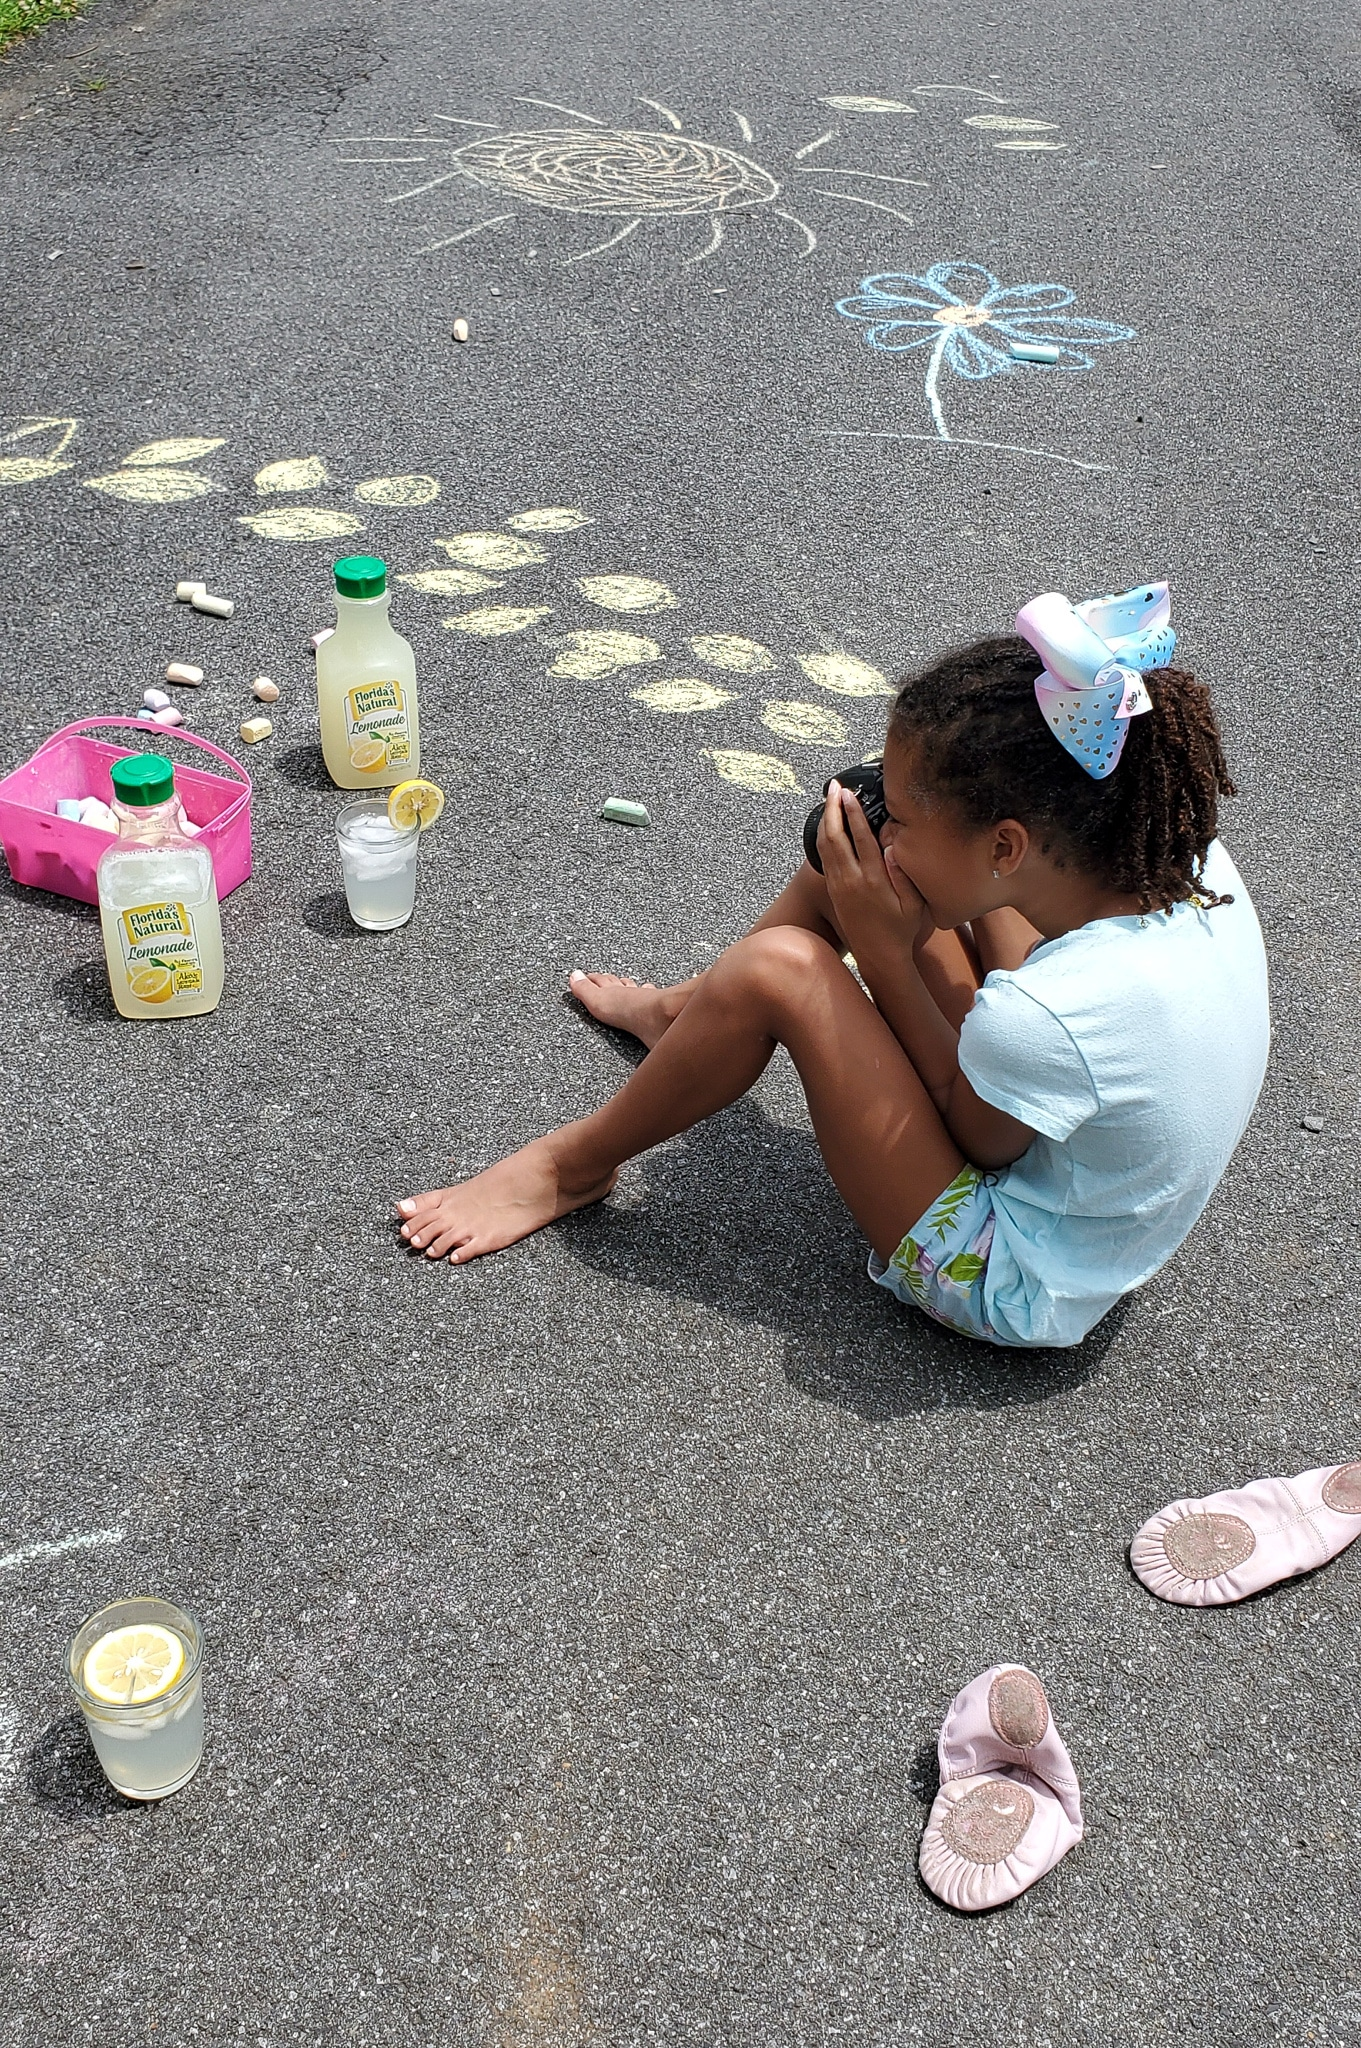 Lemonade Art Esuun Taking Photo. Looking for a fun way to keep the kids entertained this summer? Celebrate the start of summer with Lemonade-Inspired Art In the Backyard.